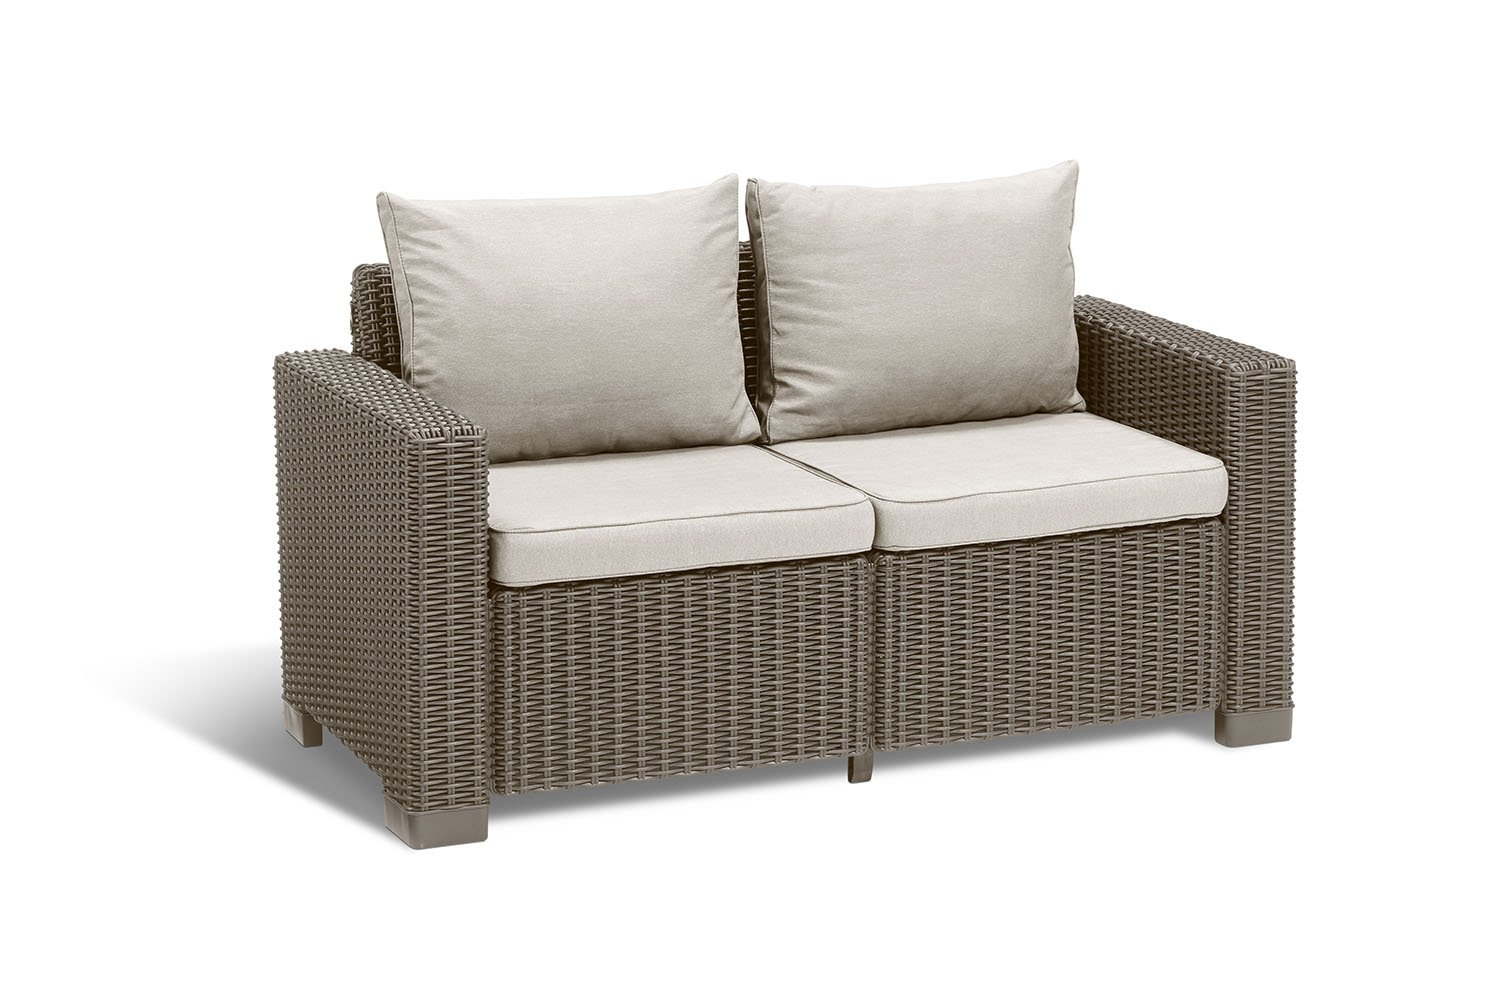 Keter California All Weather Outdoor 2-Seater Patio Sofa Loveseat with Cushions in a Resin Plastic Wicker Pattern, Cappuccino/Sand by Keter